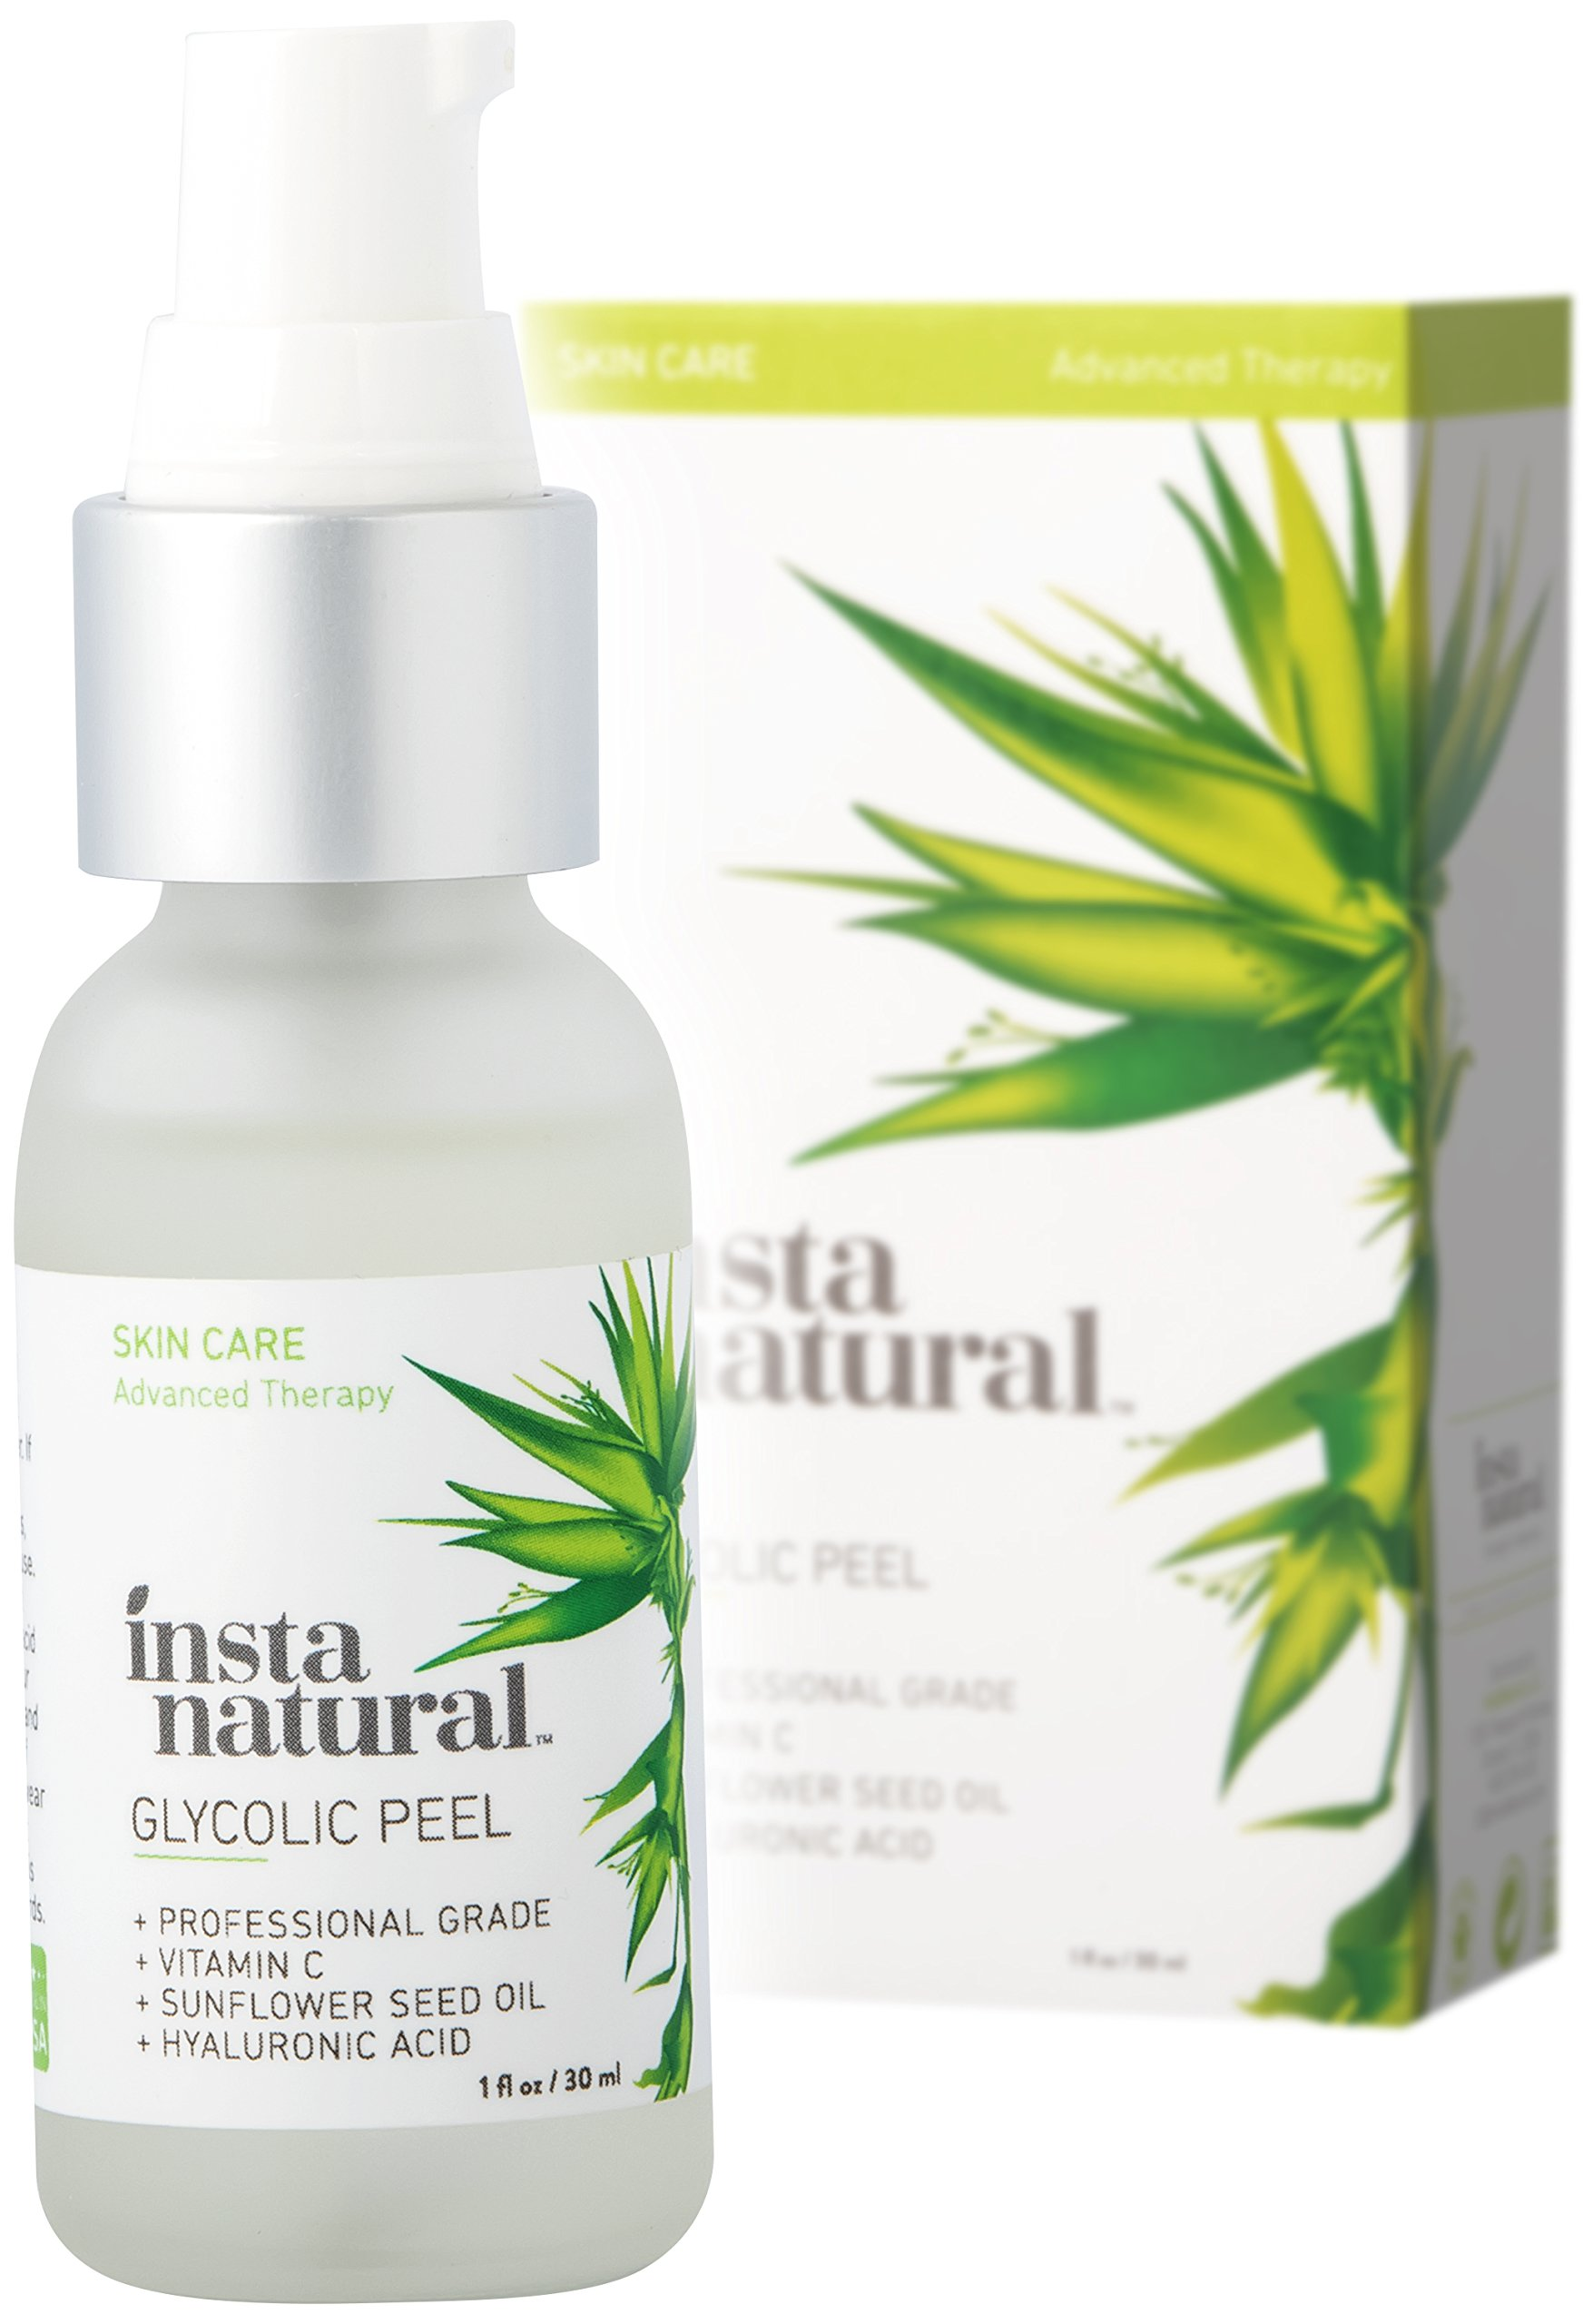 Glycolic Acid Facial Peel 30% - With Vitamin C, Hyaluronic Acid - Best Treatment to Exfoliate Deep, Minimize Pores, Reduce Acne & Breakouts, and Appearance of Aging & Scars - InstaNatural - 1 oz by InstaNatural